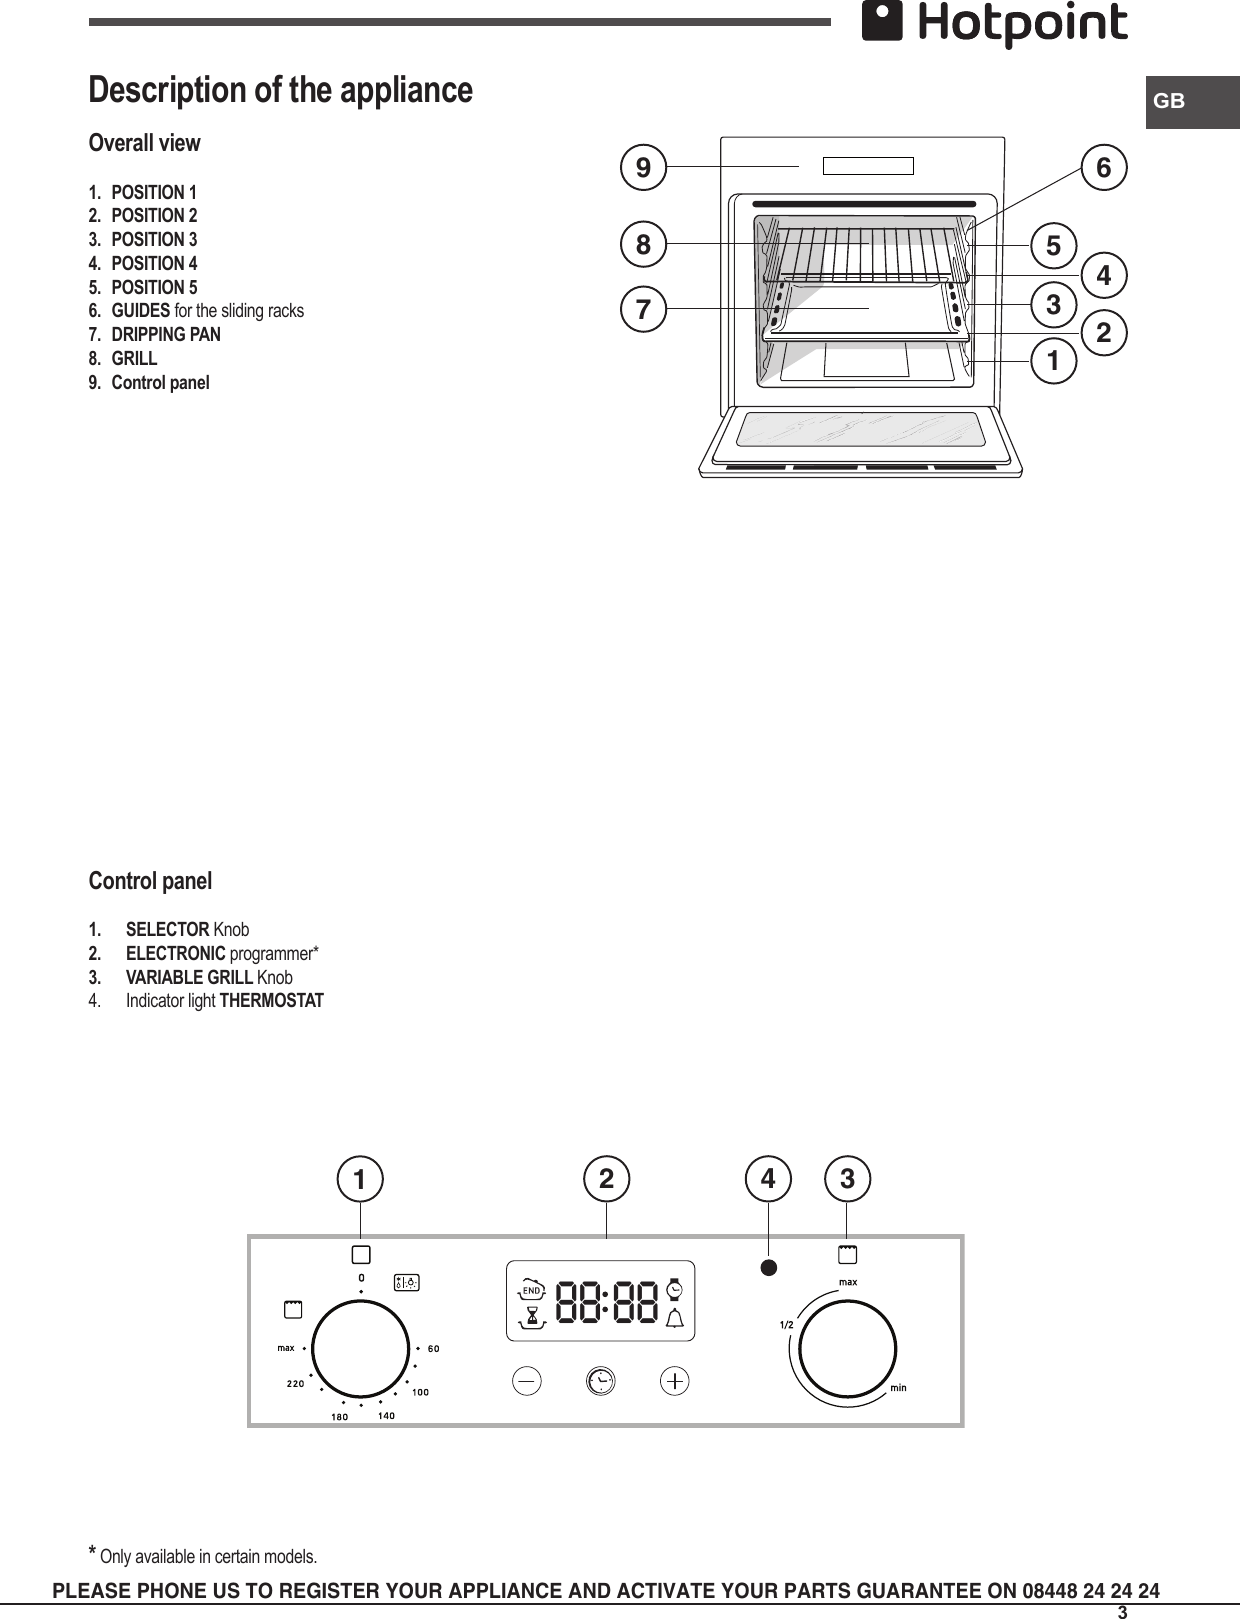 Hotpoint Microwave Oven Kso33cx S Users Manual Forno Ventilato Control Panel Circuit Diagram And Parts List For Sharp Microwaveparts Page 3 Of 12